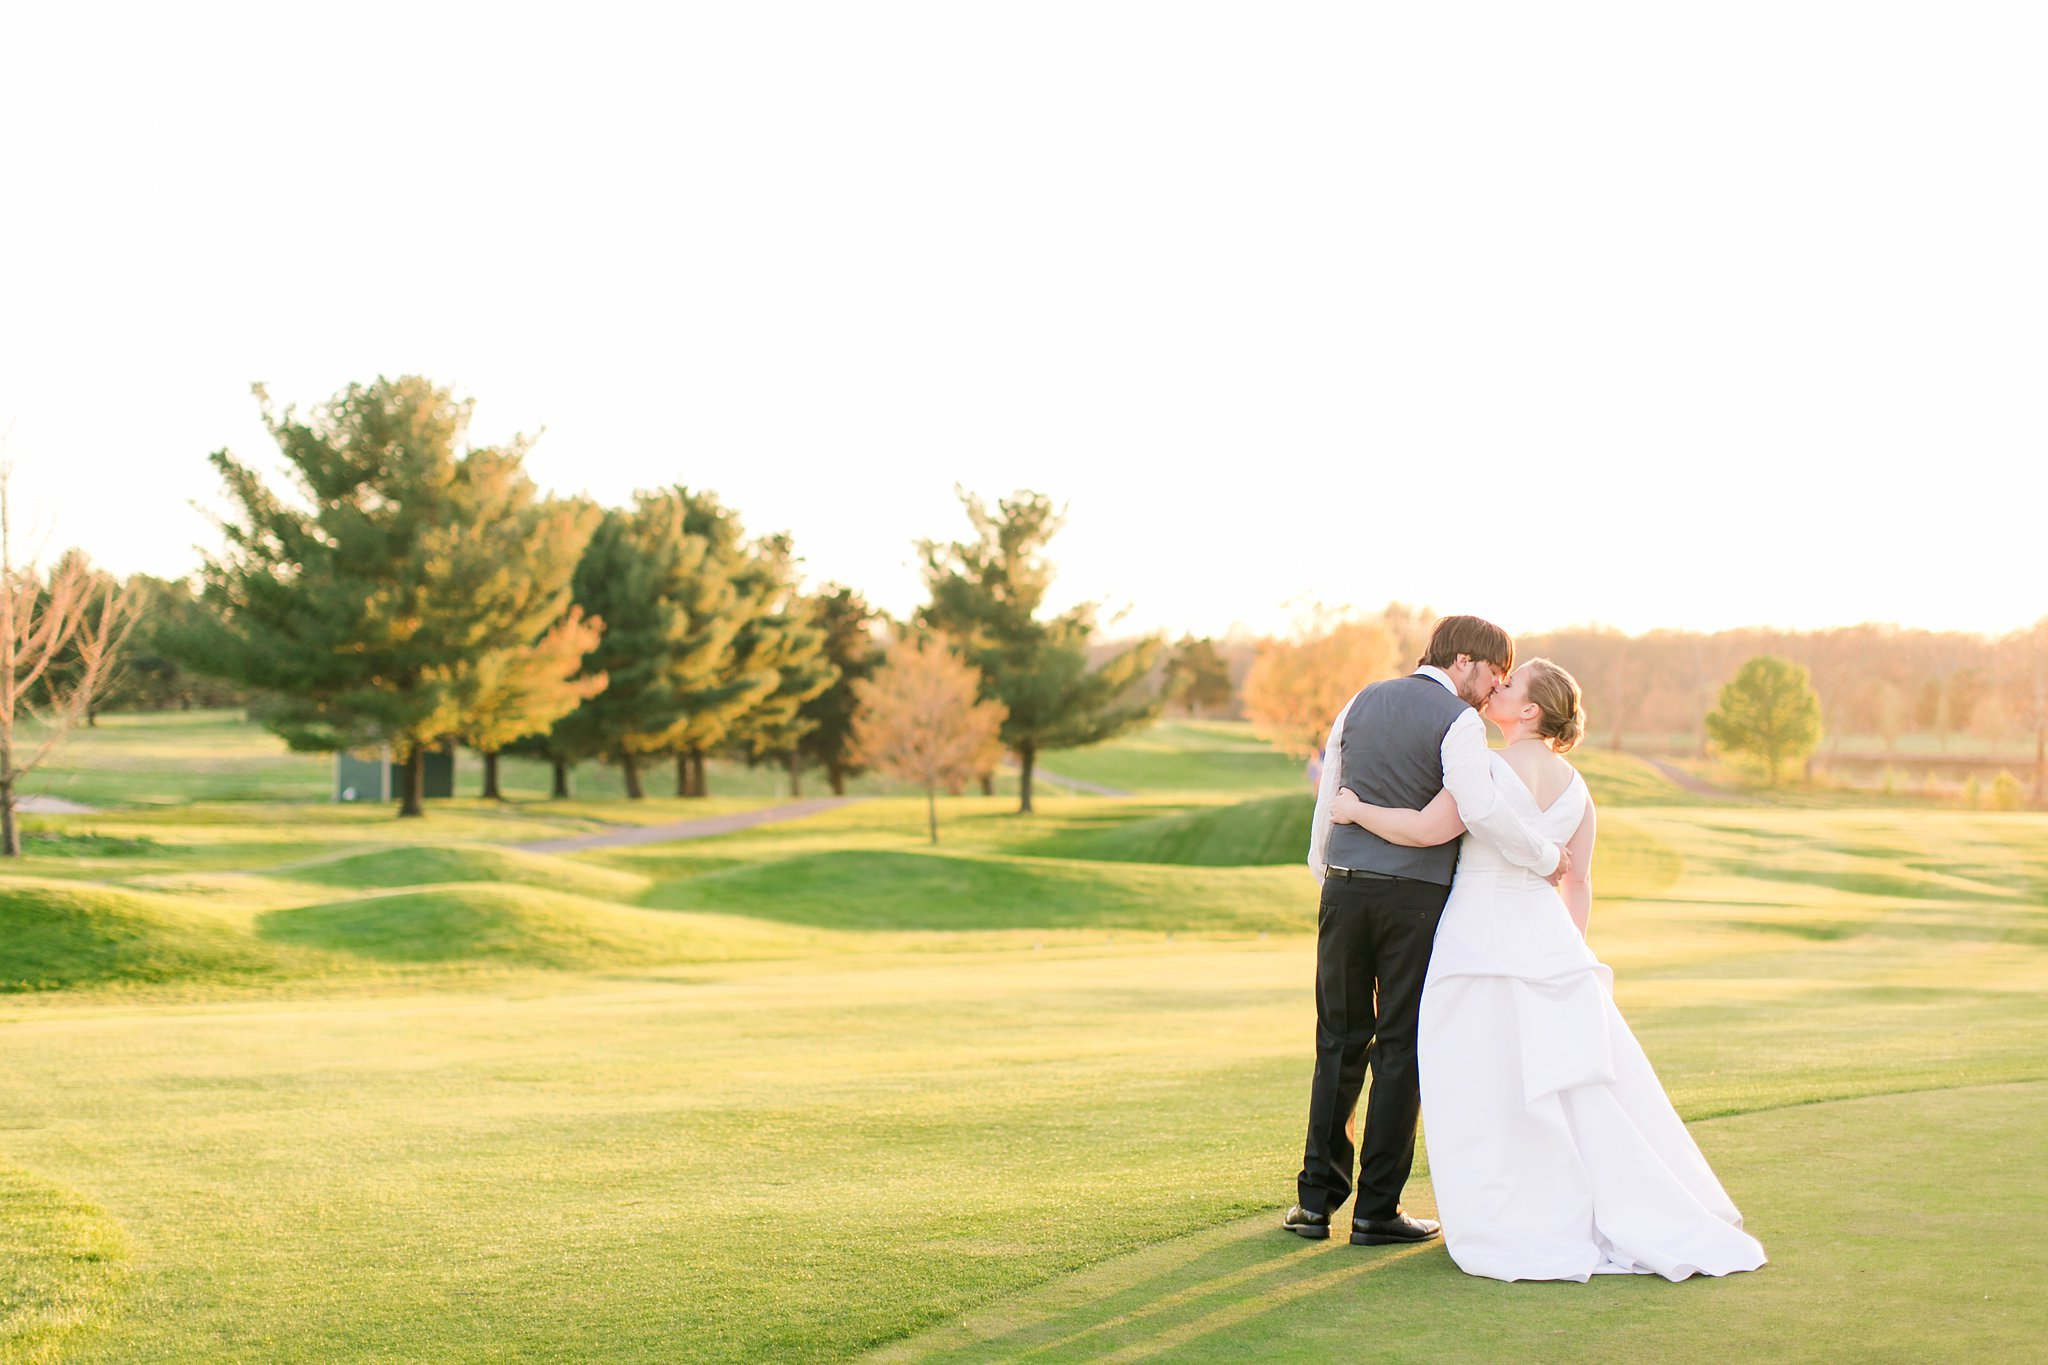 Chantilly National Golf Club Wedding Photos Virginia Wedding Photographer Megan Kelsey Photography Mary Beth and Nathan-108.jpg